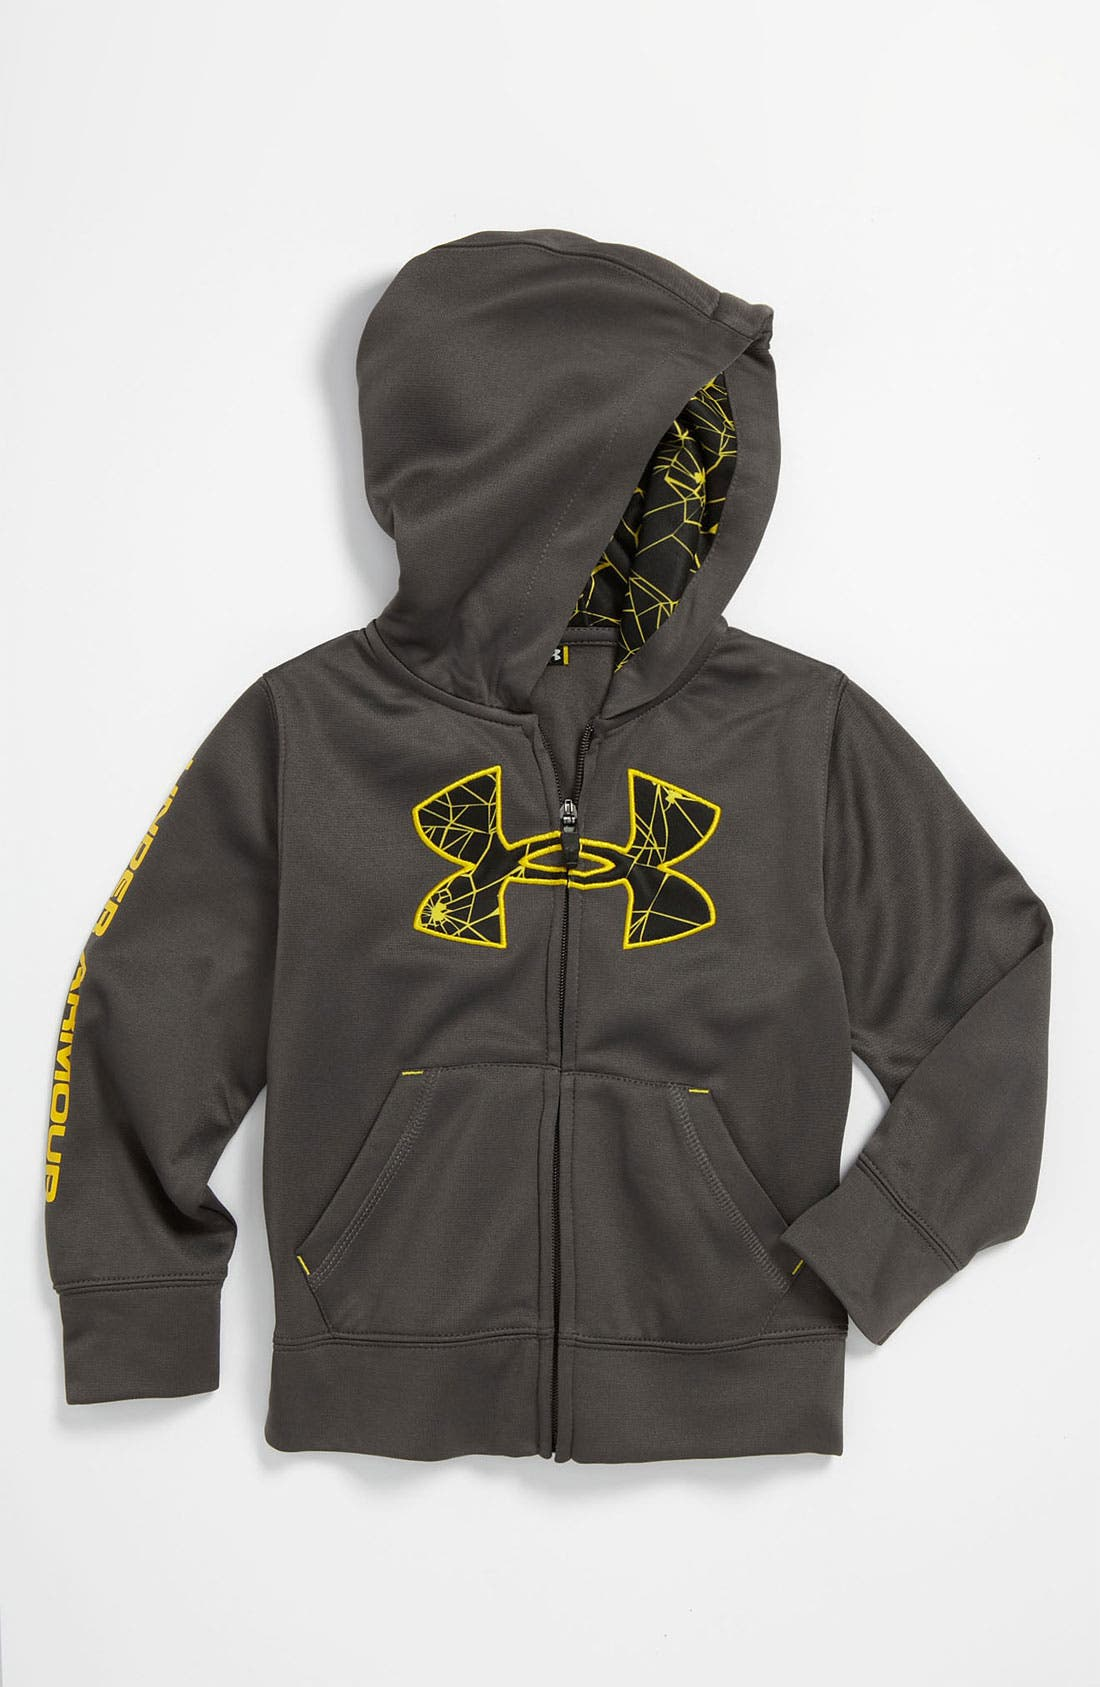 Main Image - Under Armour 'Web' Hoodie (Toddler)